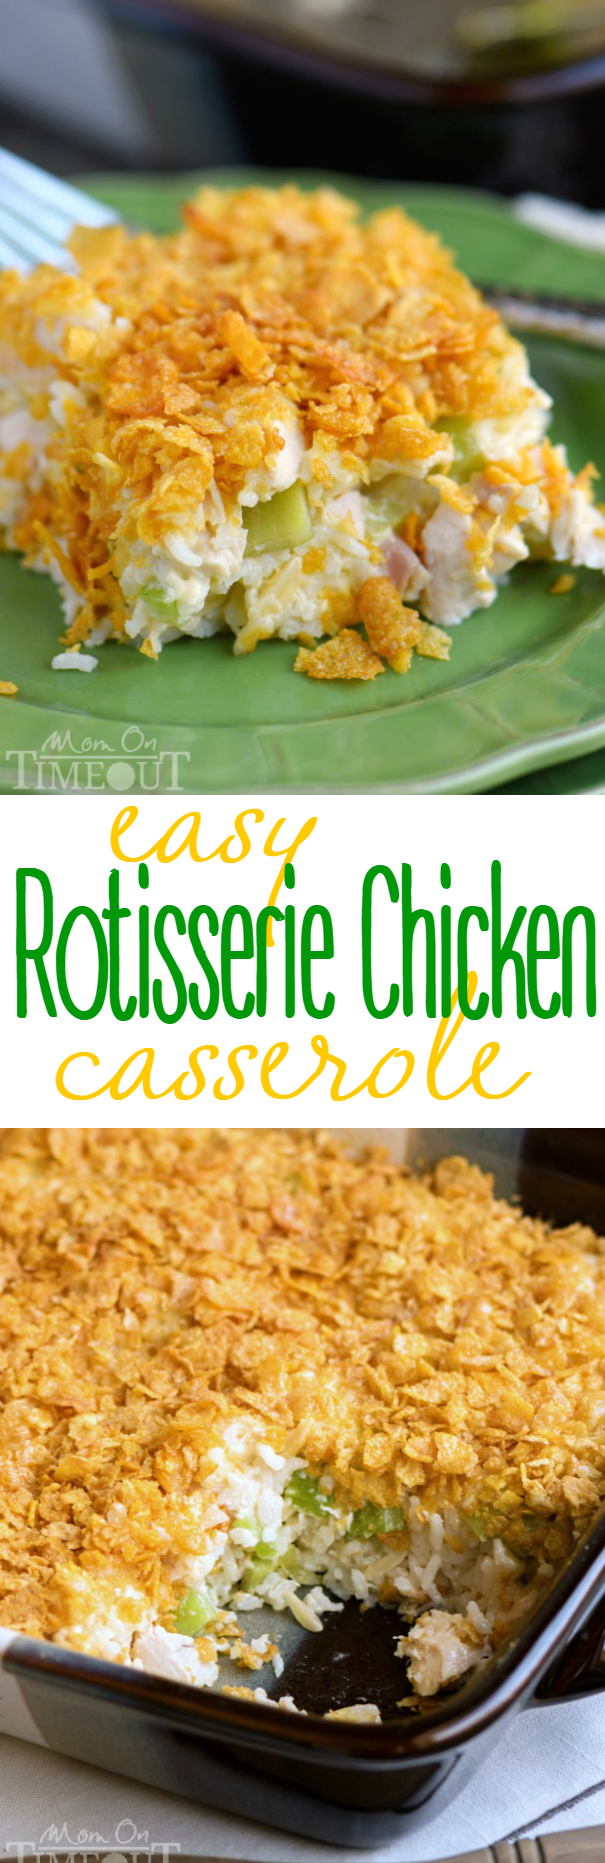 Your family is going to love this easy Rotisserie Chicken Casserole! An incredibly easy and delicious recipe you'll find yourself making again and again! | MomOnTimeout.com |#dinner #recipe #chicken